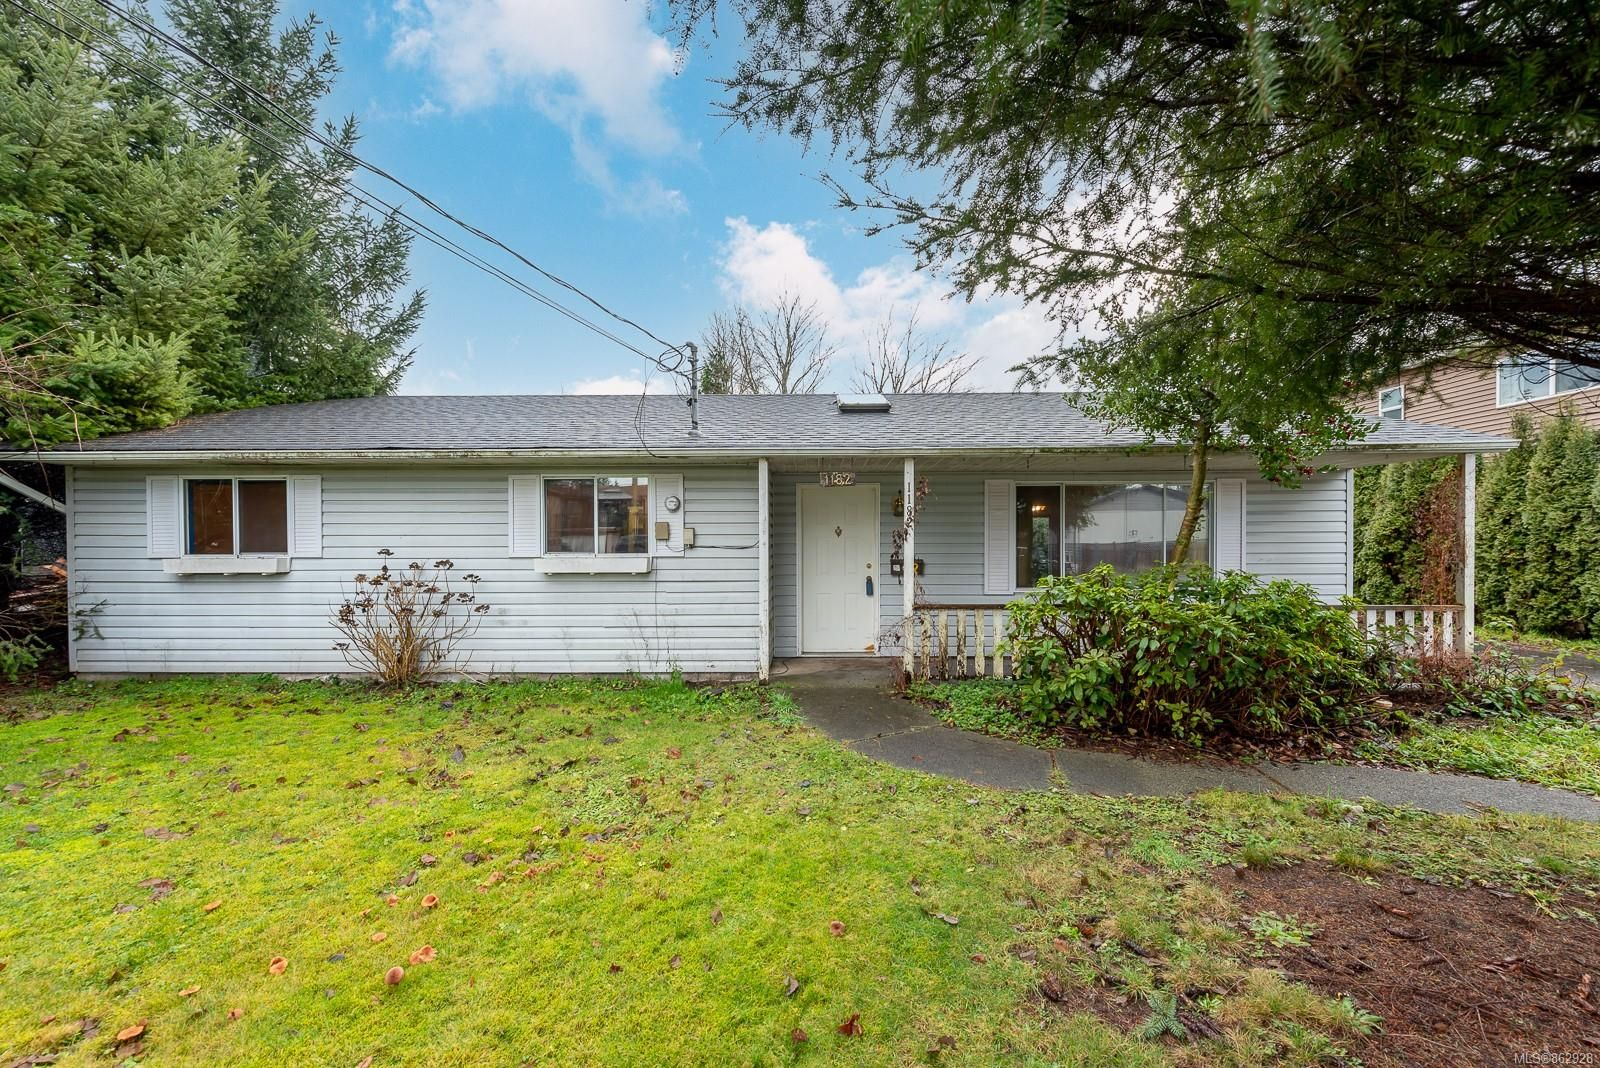 Main Photo: 1182 21st St in : CV Courtenay City House for sale (Comox Valley)  : MLS®# 862928